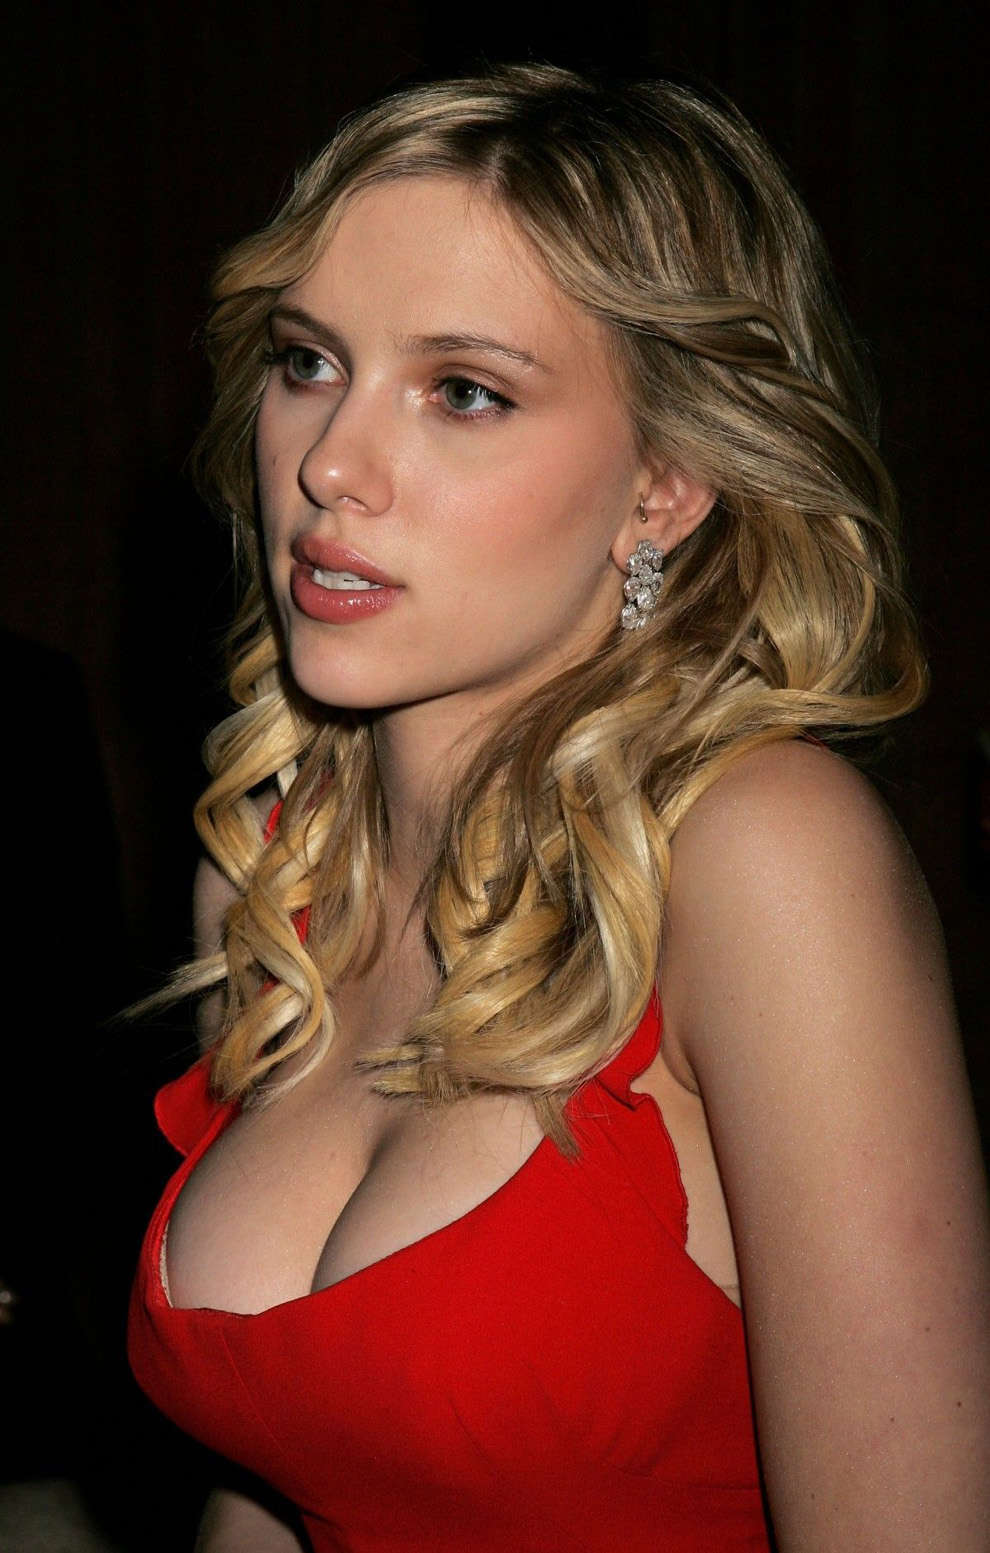 Nude photos of Scarlett Johansson hacked from phone by group named Hollywood ...